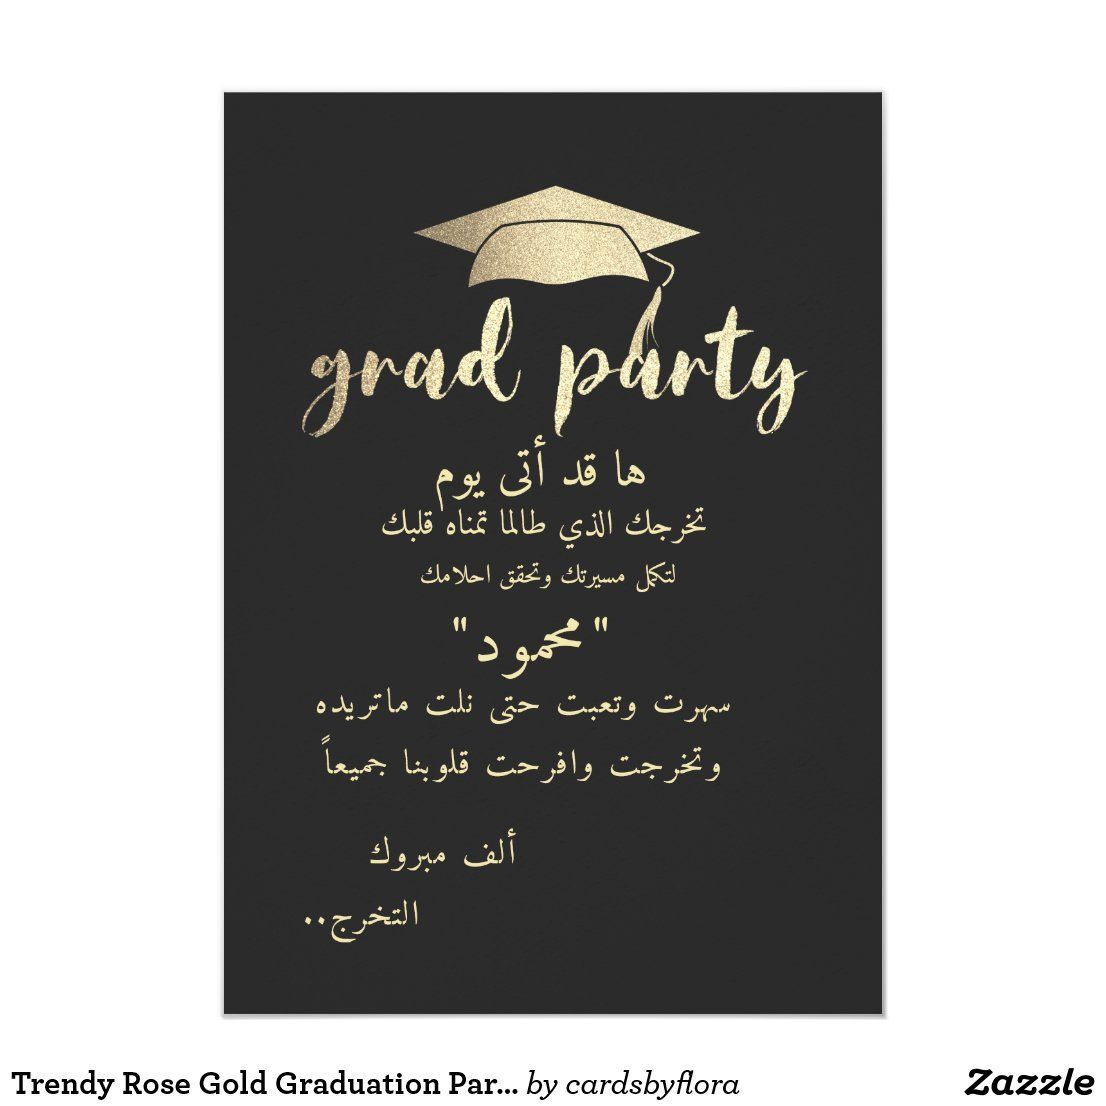 Trendy Rose Gold Graduation Party Photo Invitation Colorful Stationery Graduation Art Gold Graduation Party